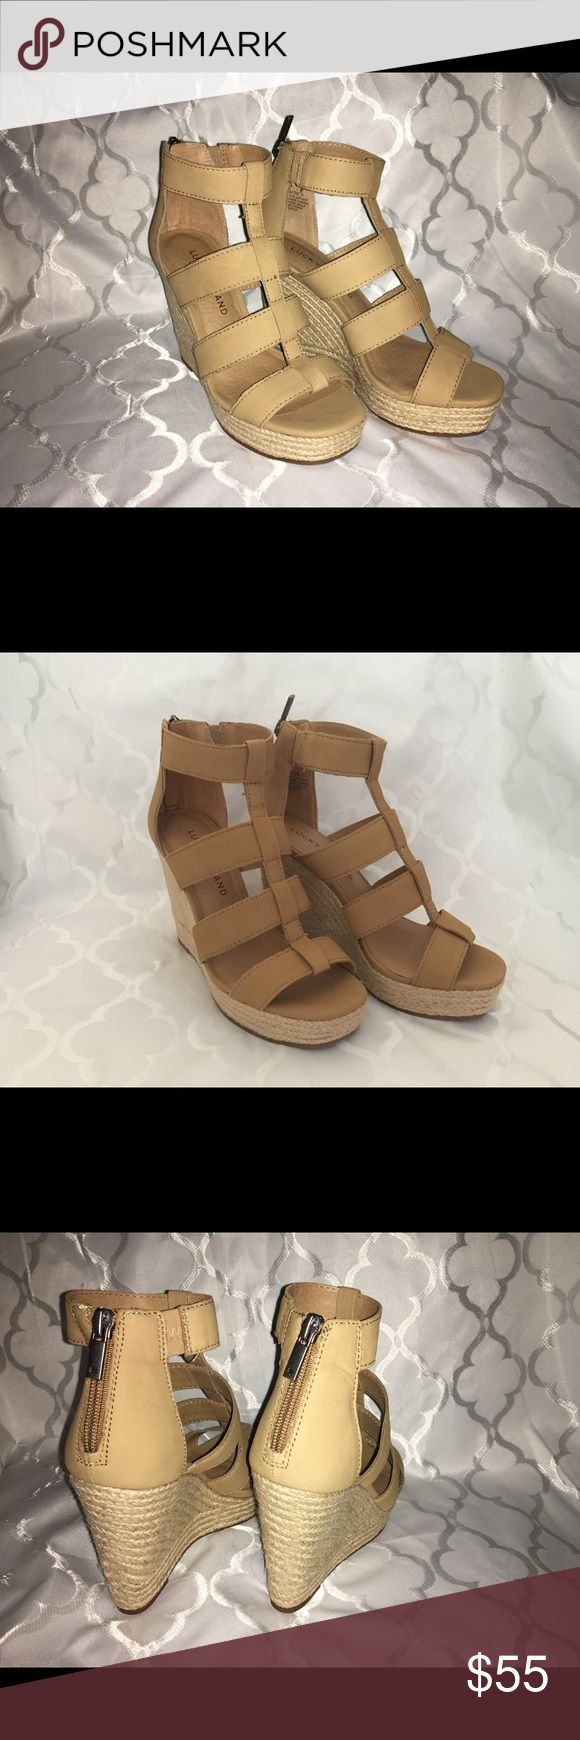 Lucky Brand Lateera caged zip back wedge Gladiator meets espadrille for this perfect combination of glam with a caged bodice, zip back and espadrille heel in a go wiht everything neutral nubuck color. New in box! Size 6.5. Lucky Brand Shoes Espadrilles